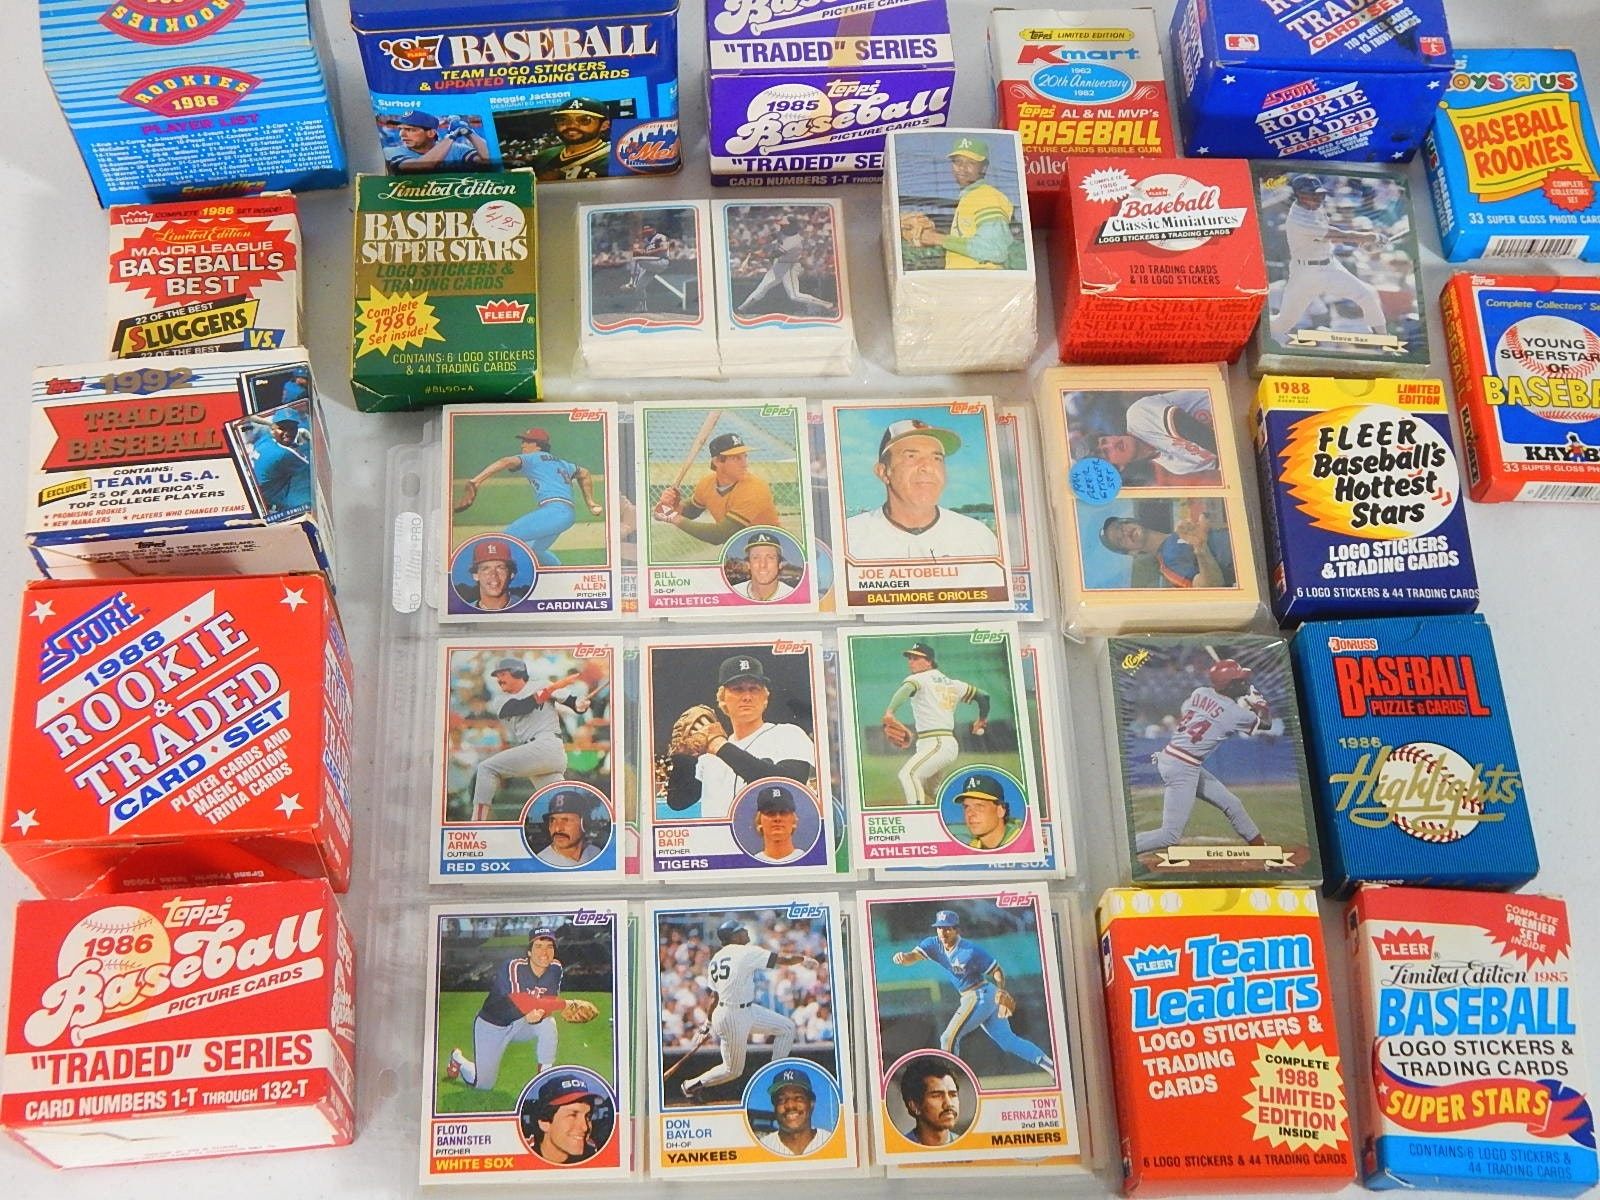 Over 20 Baseball Card Sets from 1983 to 1987